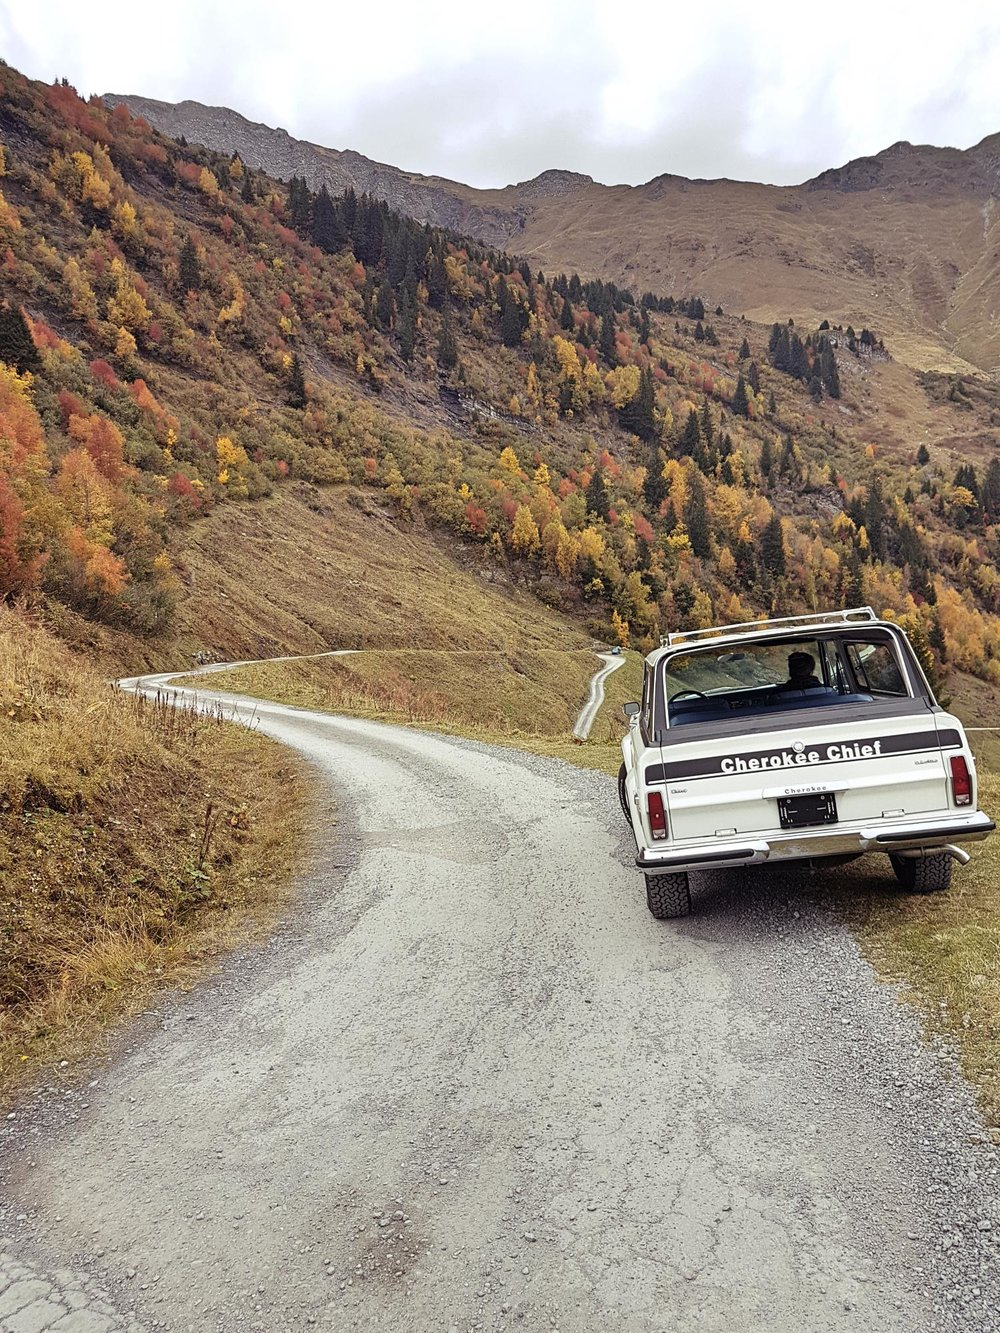 jeep-cherokee-chief-1978-shooting-morgins-switzerland-84.jpg